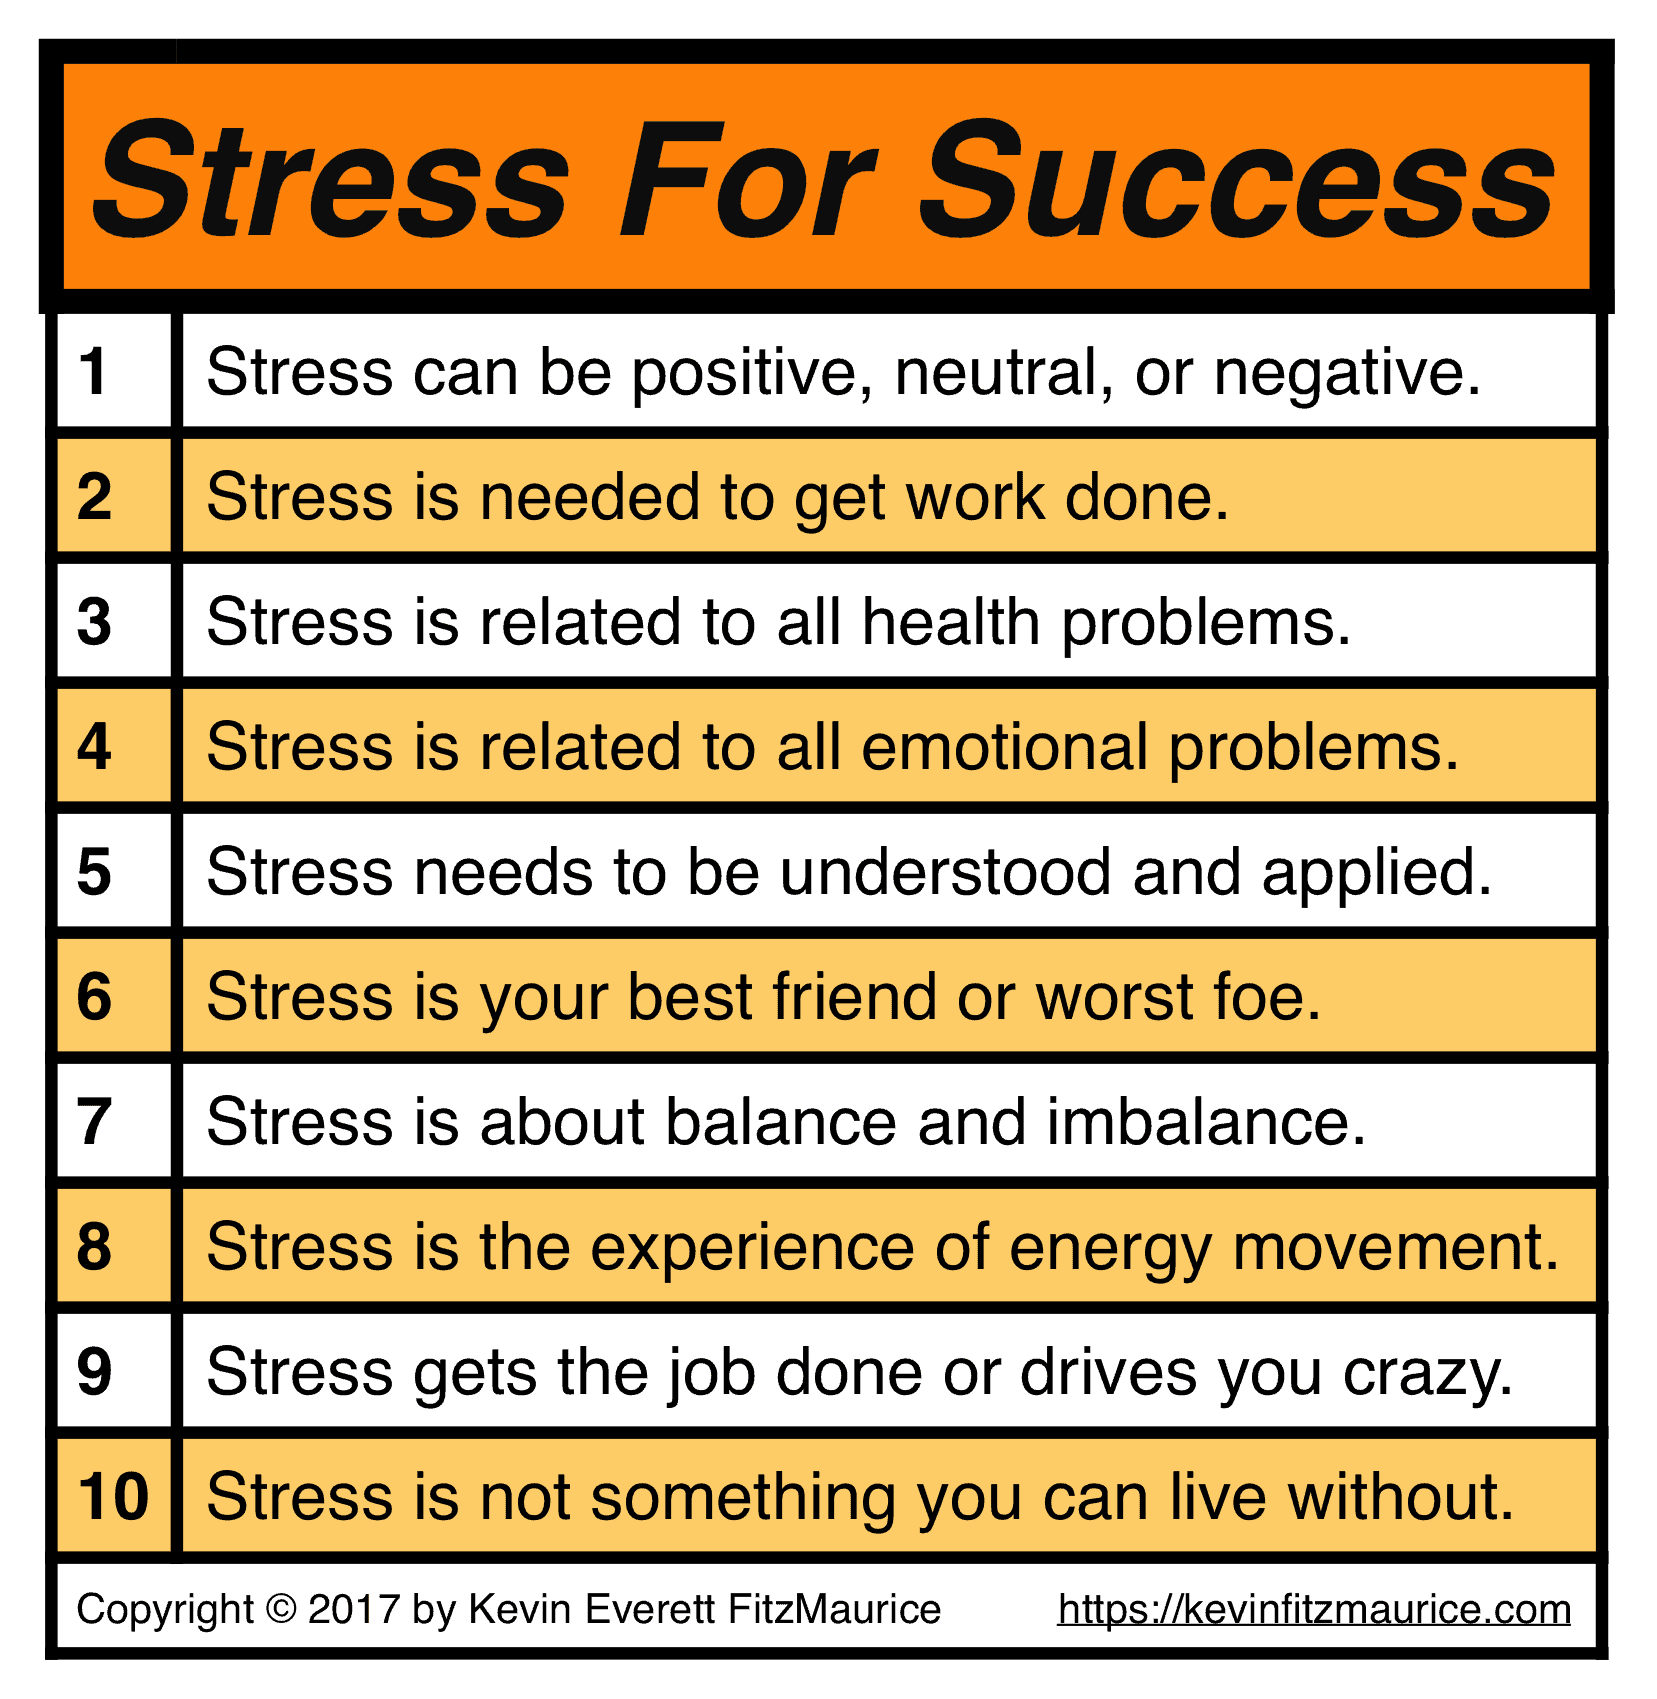 How to Be Successful in a Stressful Business Environment